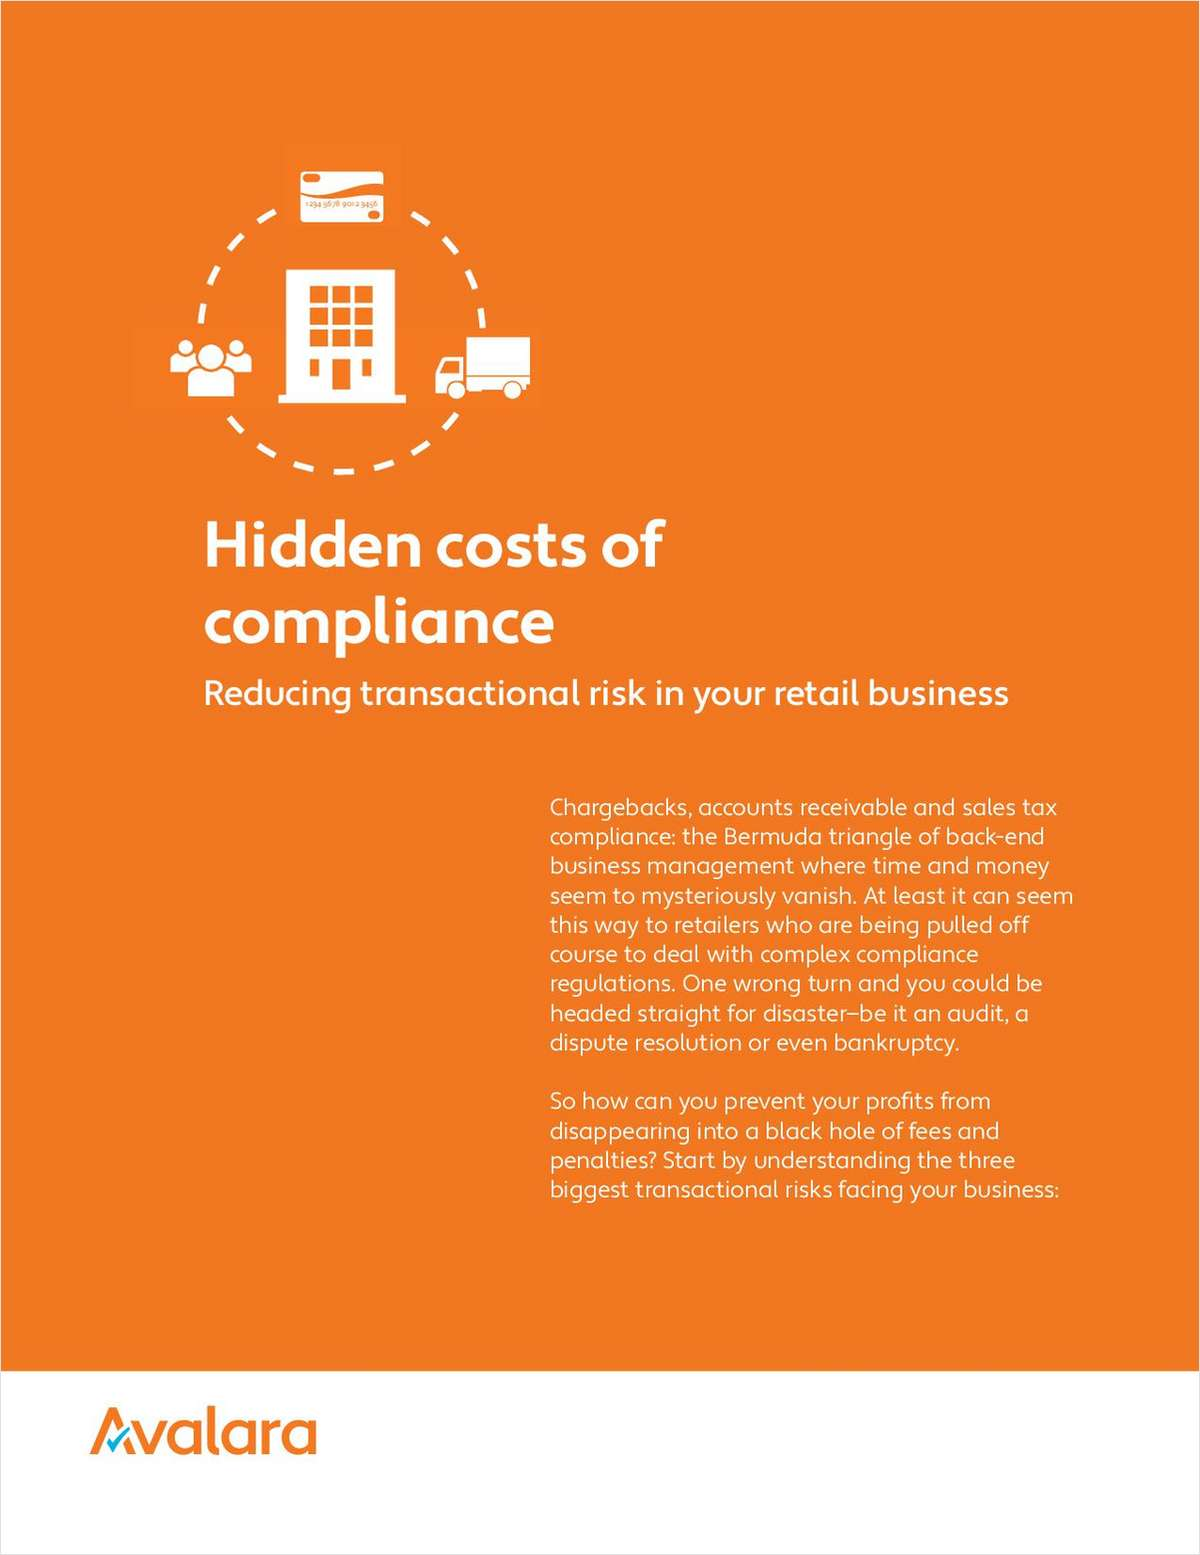 Hidden Costs of Compliance: Reducing Transactional Risk in Your Retail Business